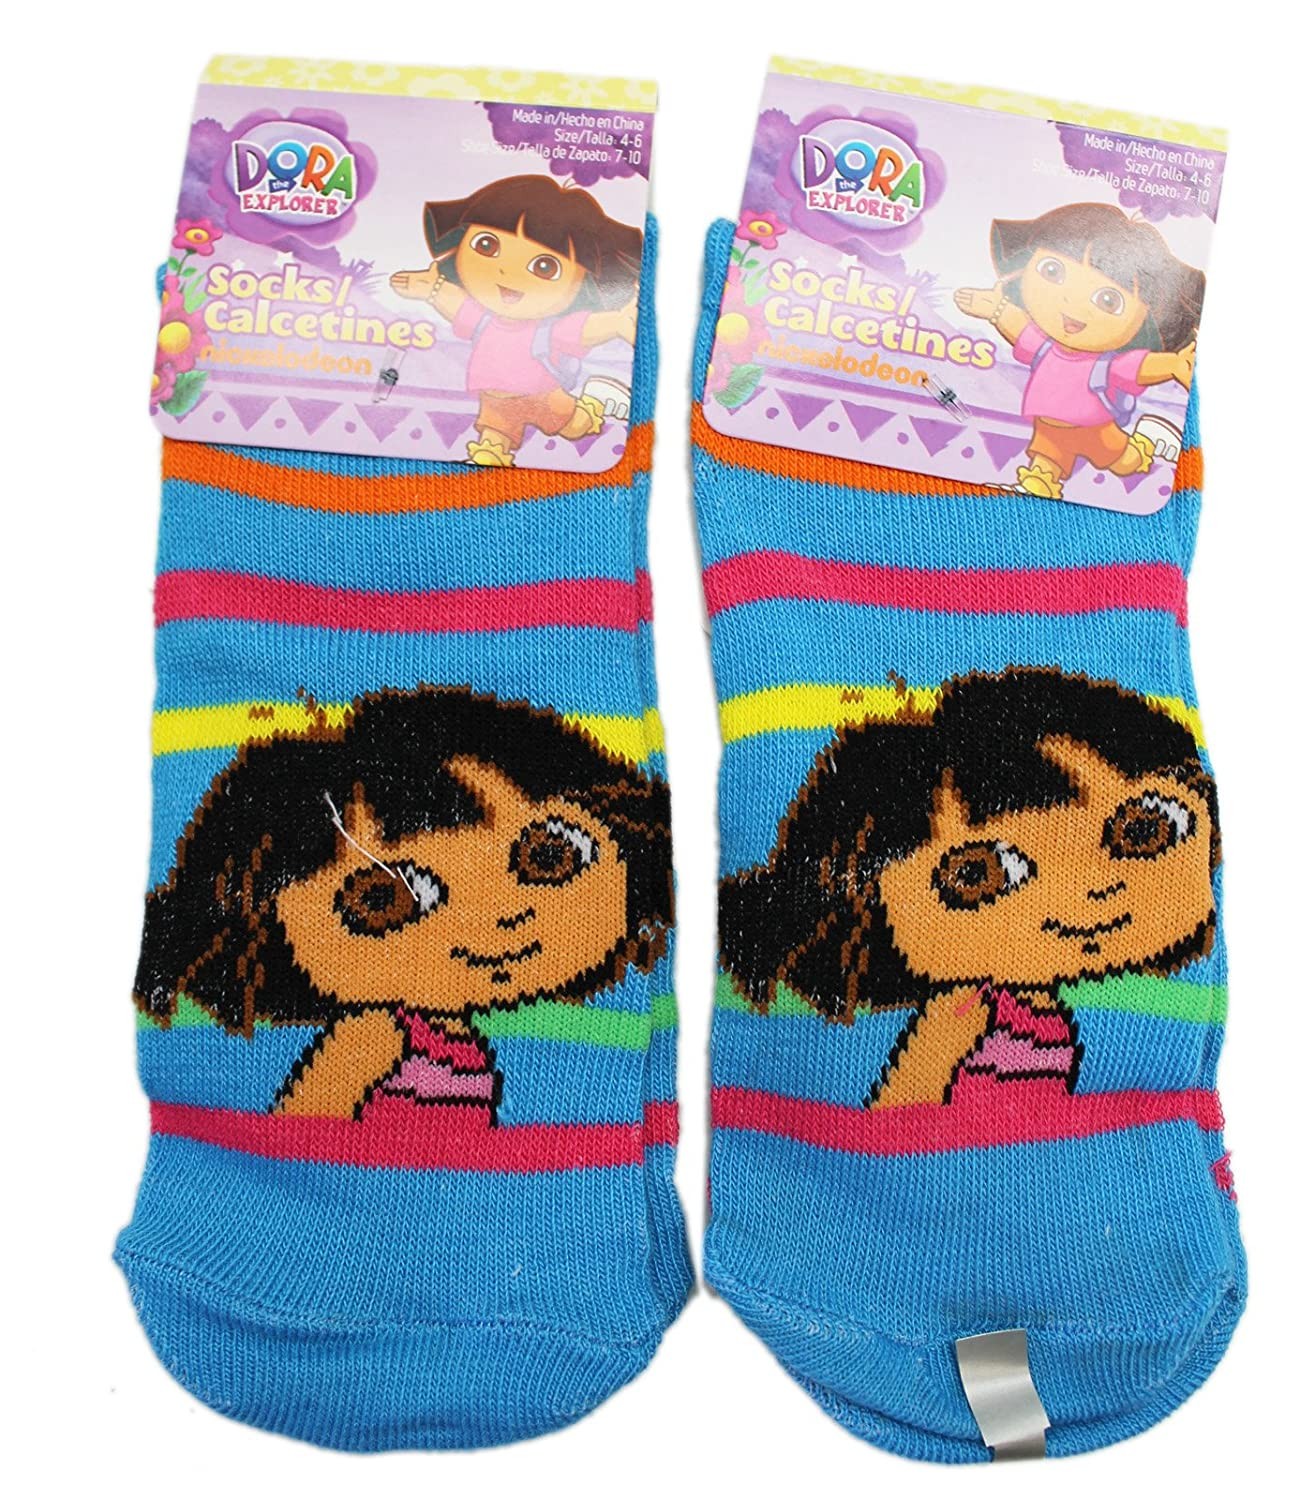 Amazon.com: Dora the Explorer Sky Blue Striped Kids Socks (Size 4-6, 2 Pairs): Clothing